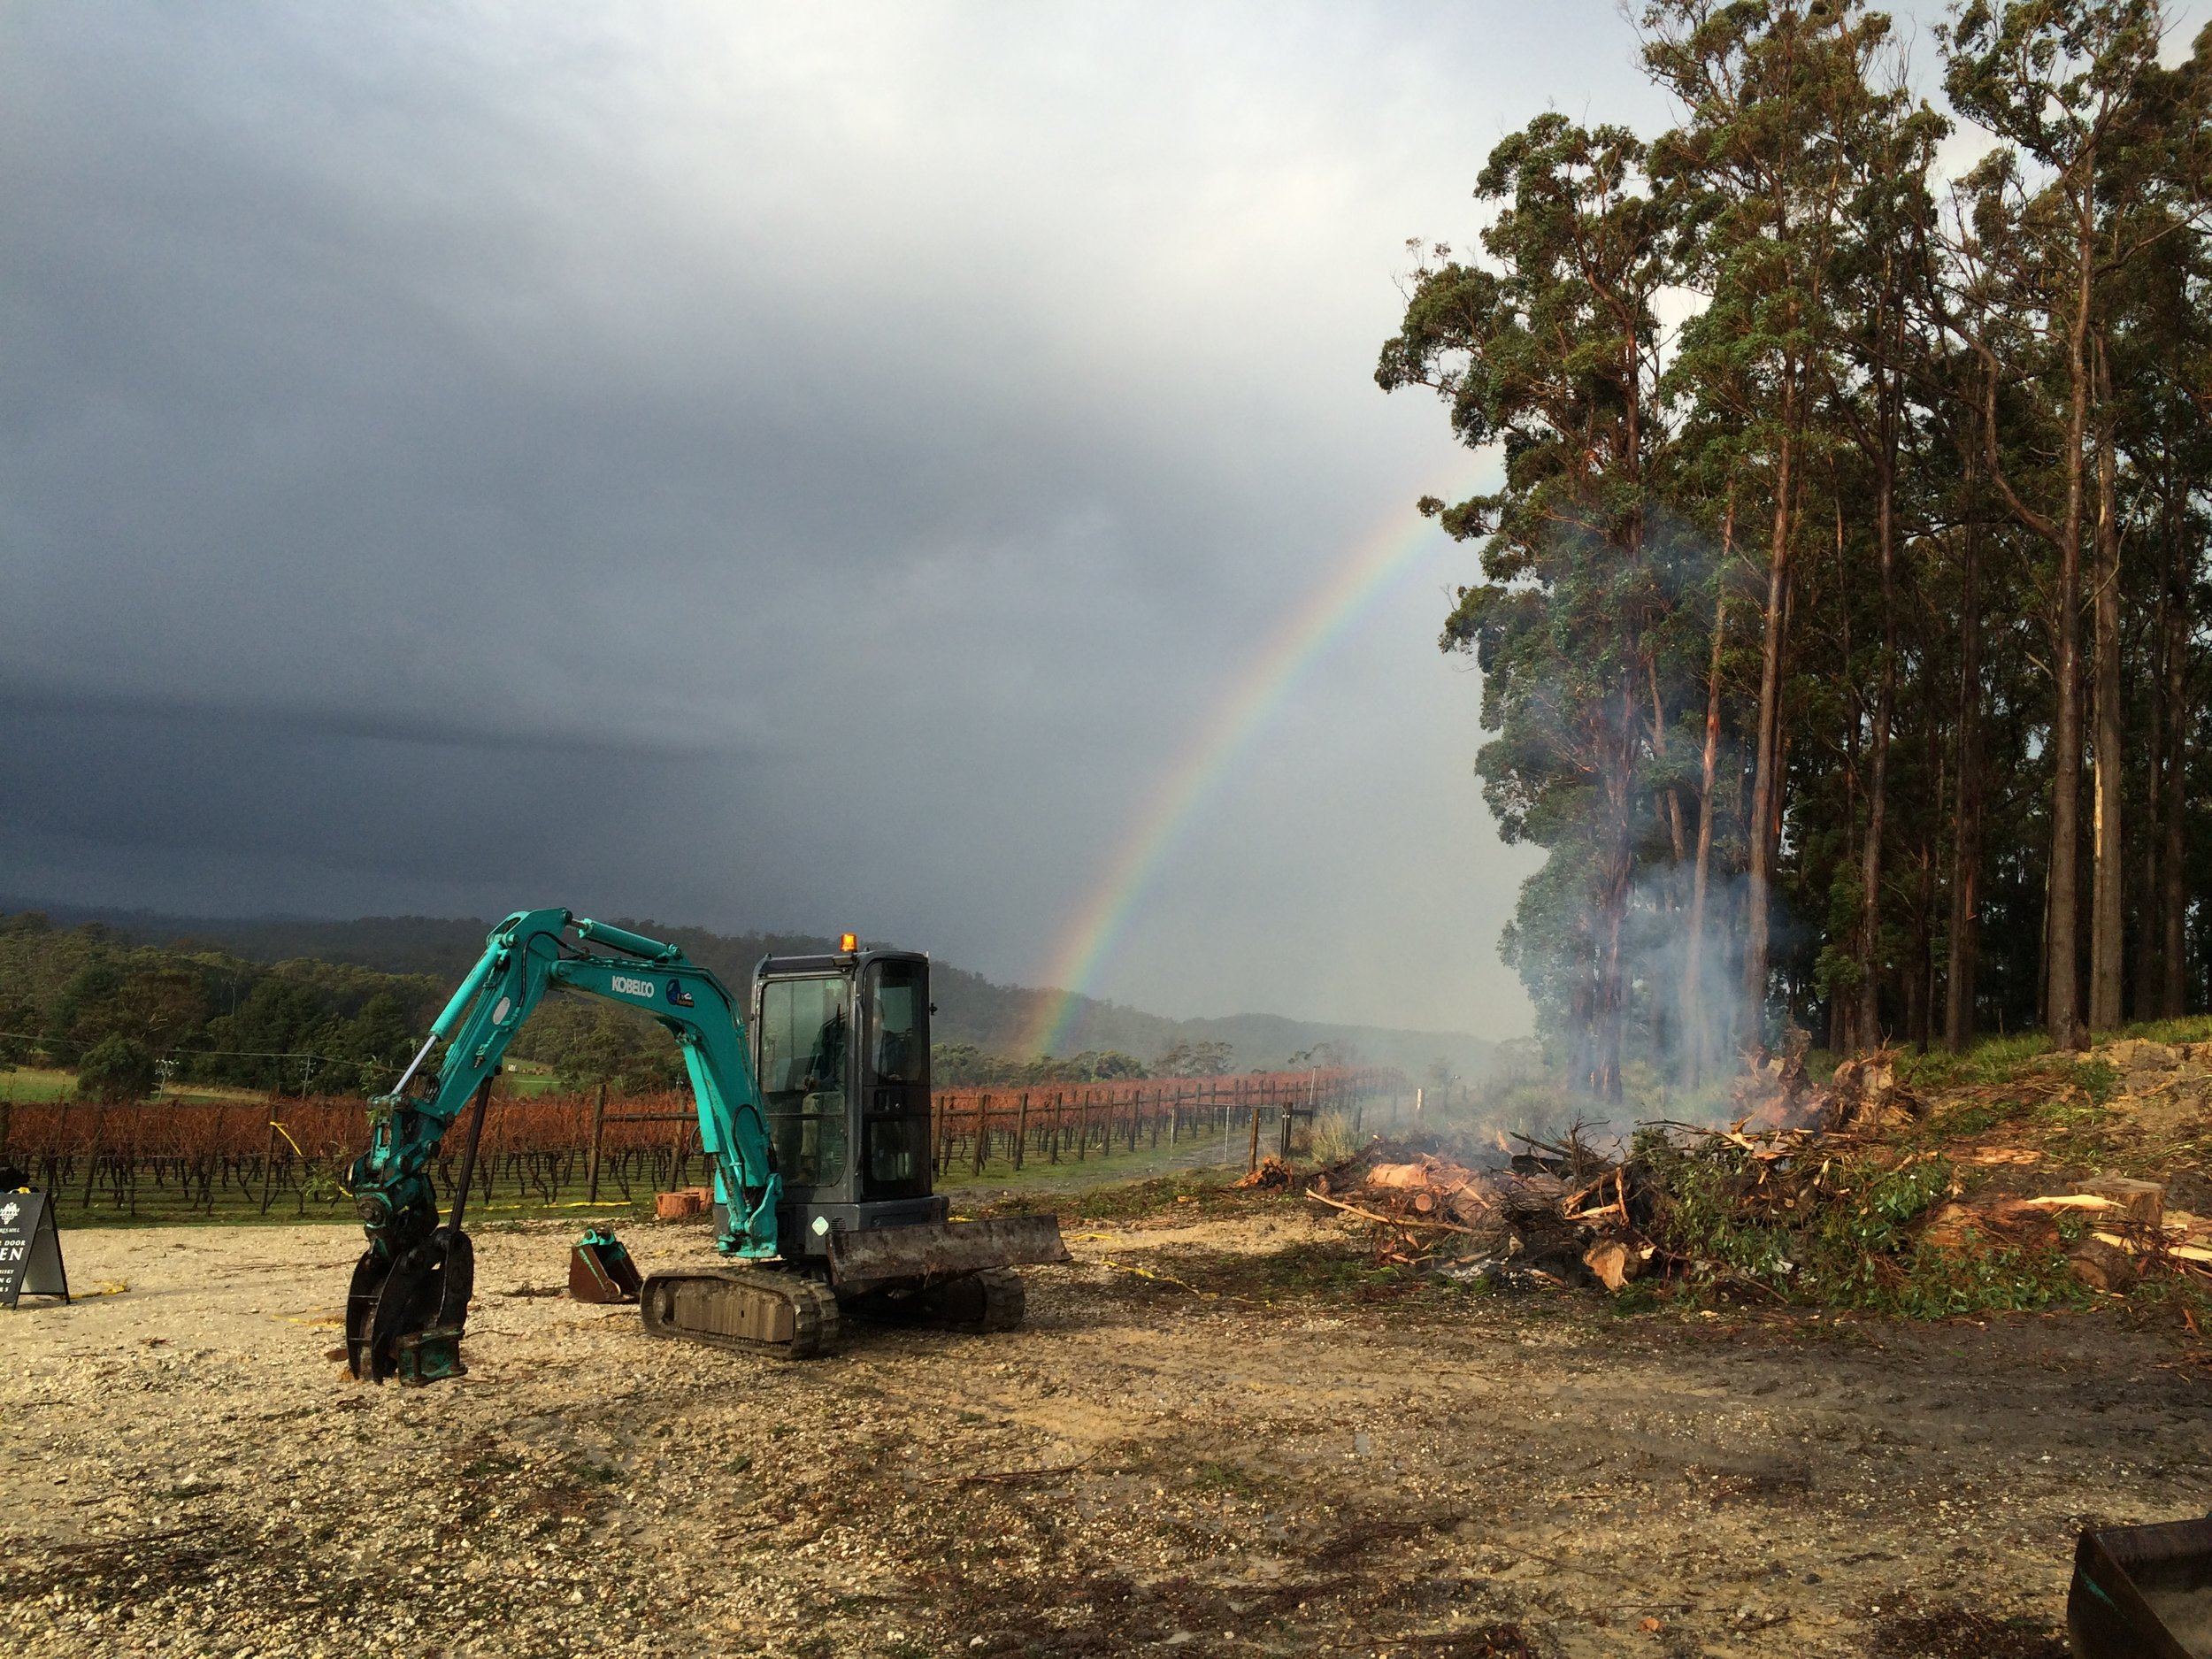 Digger with rainbow